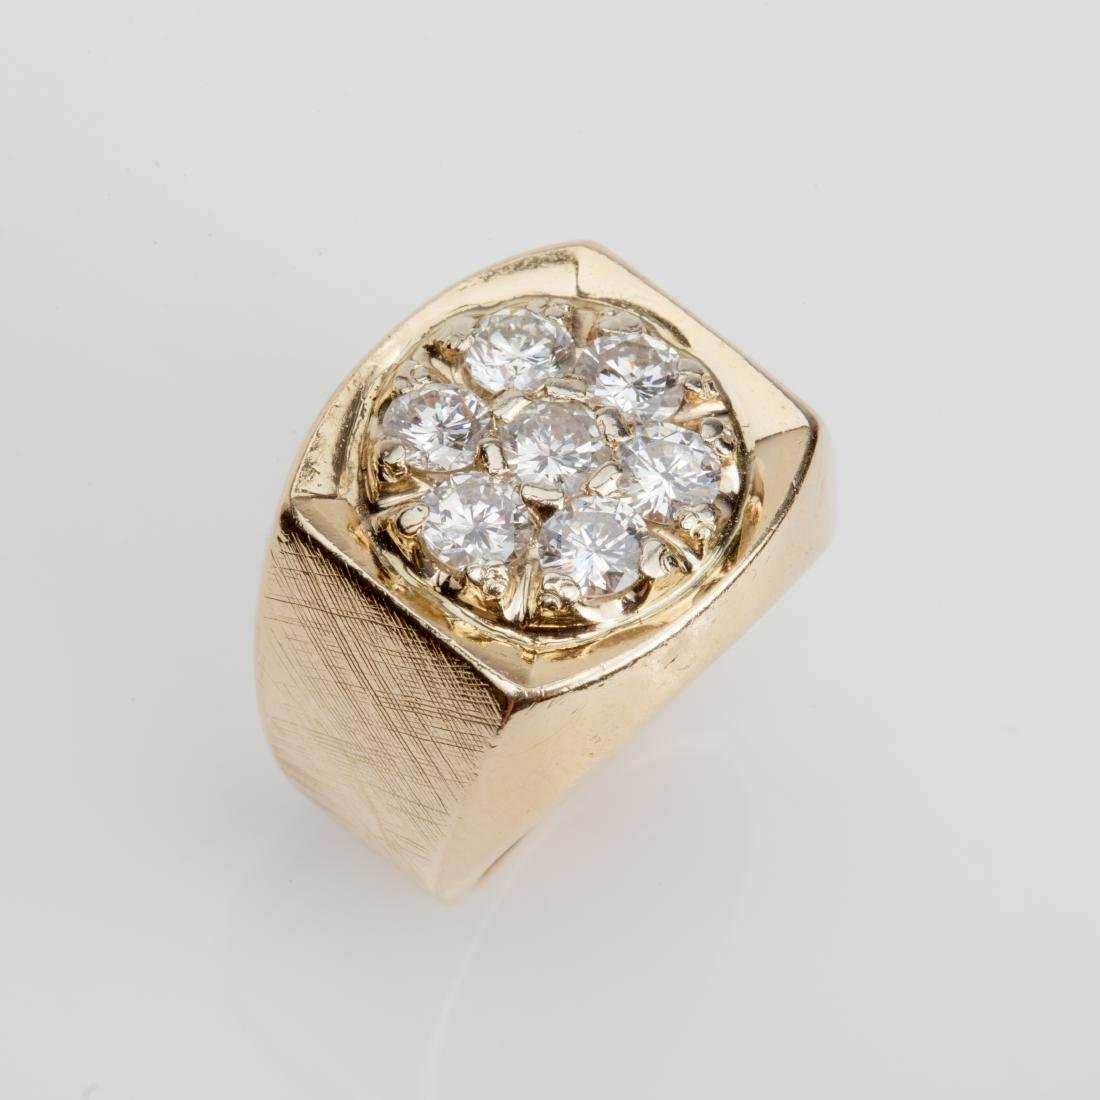 14K MENS ROUND TOP DIAMOND CLUSTER RING SIZE 6.7